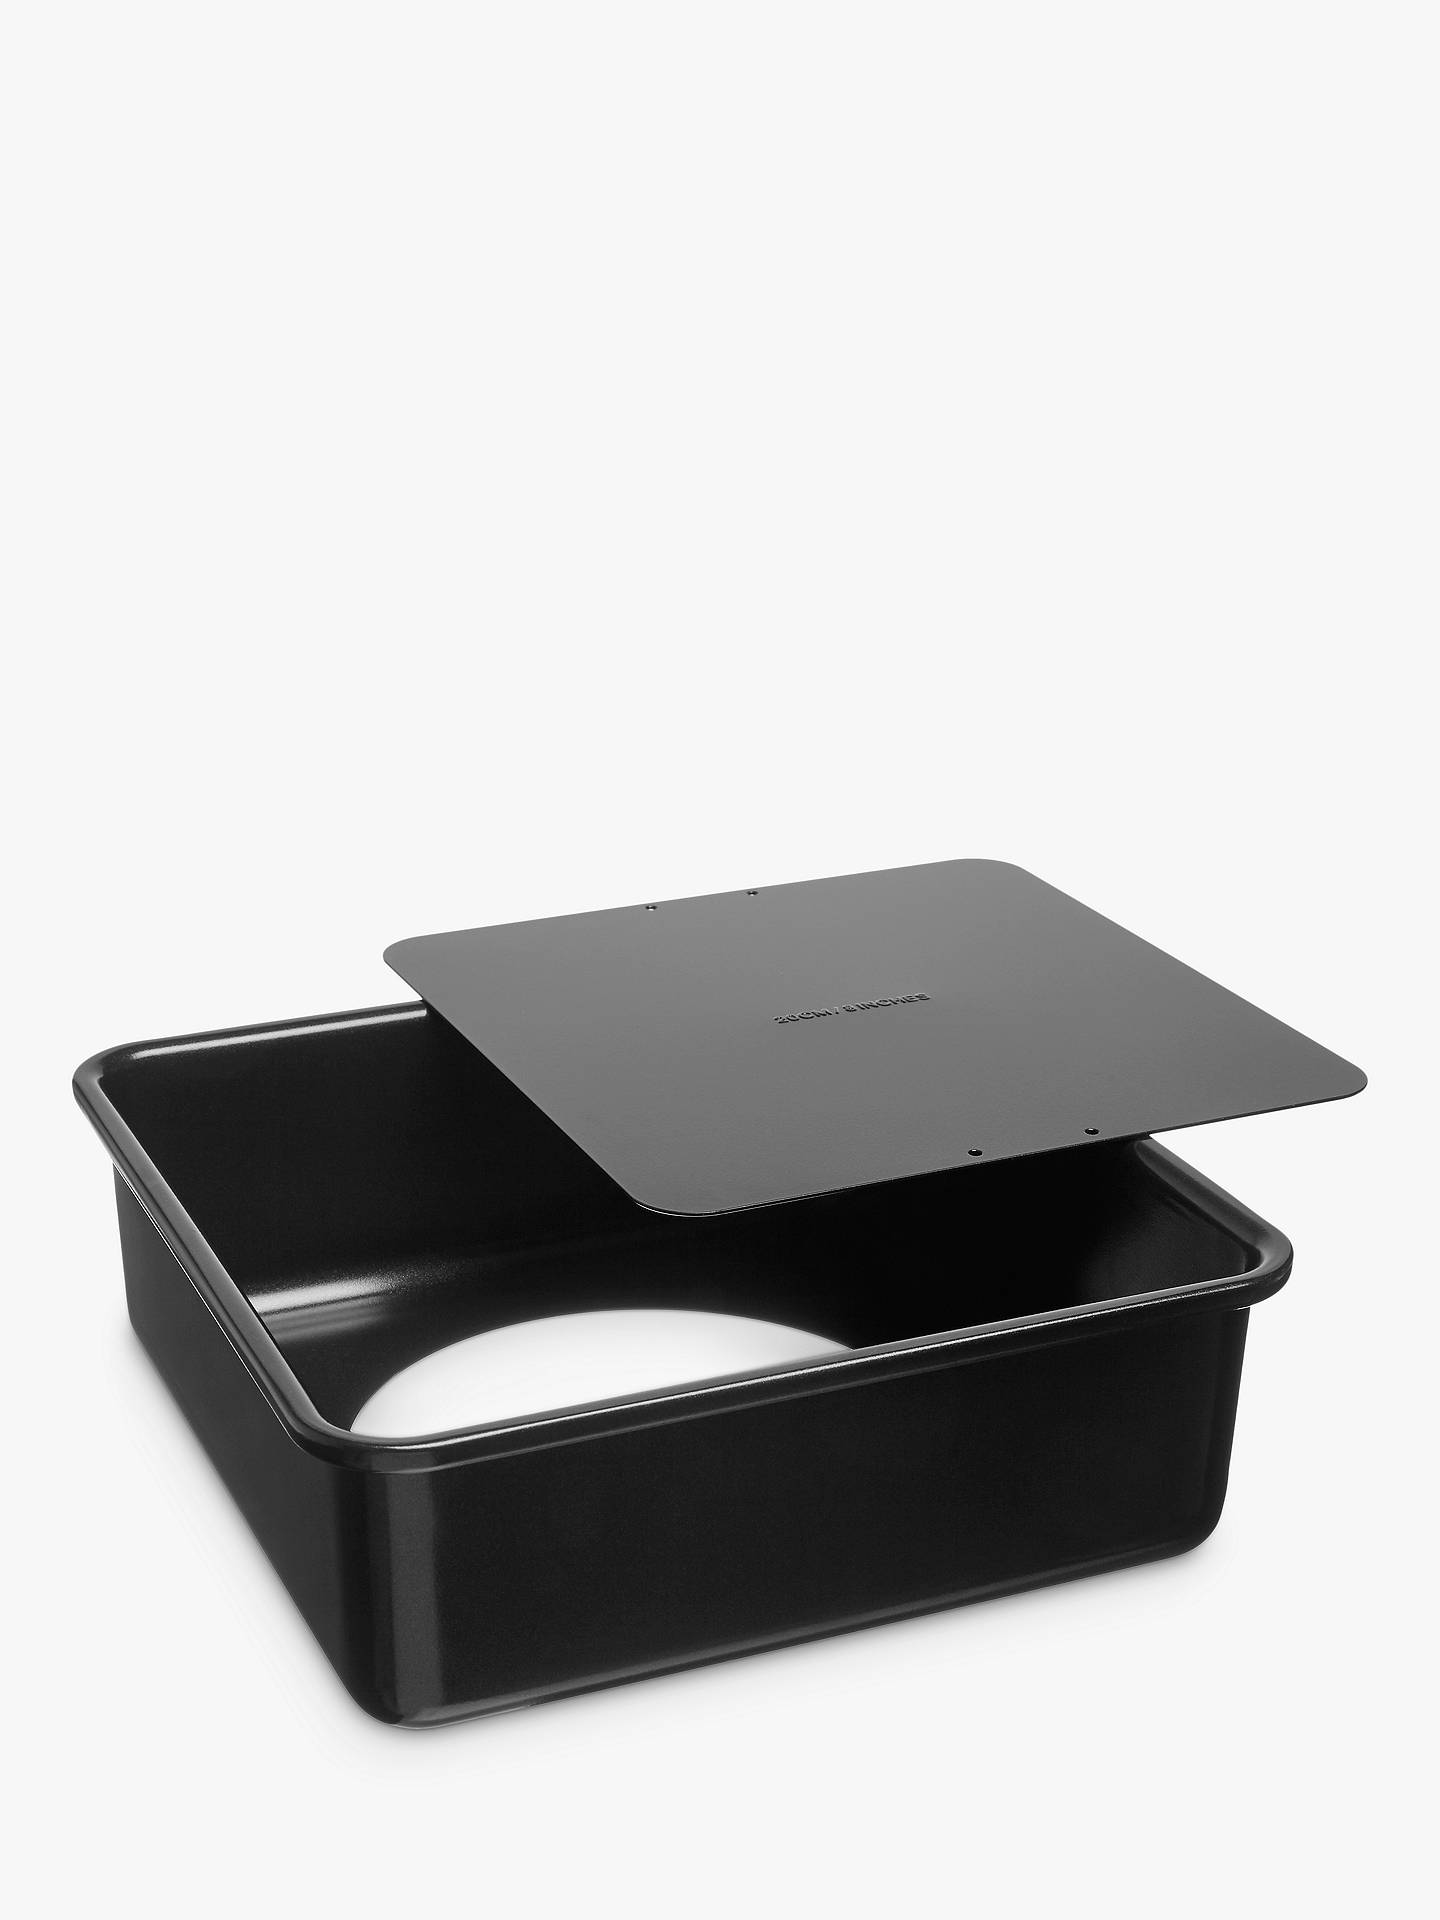 BuyJohn Lewis & Partners Professional Non-Stick Square Cake Tin, 20 x 20cm Online at johnlewis.com